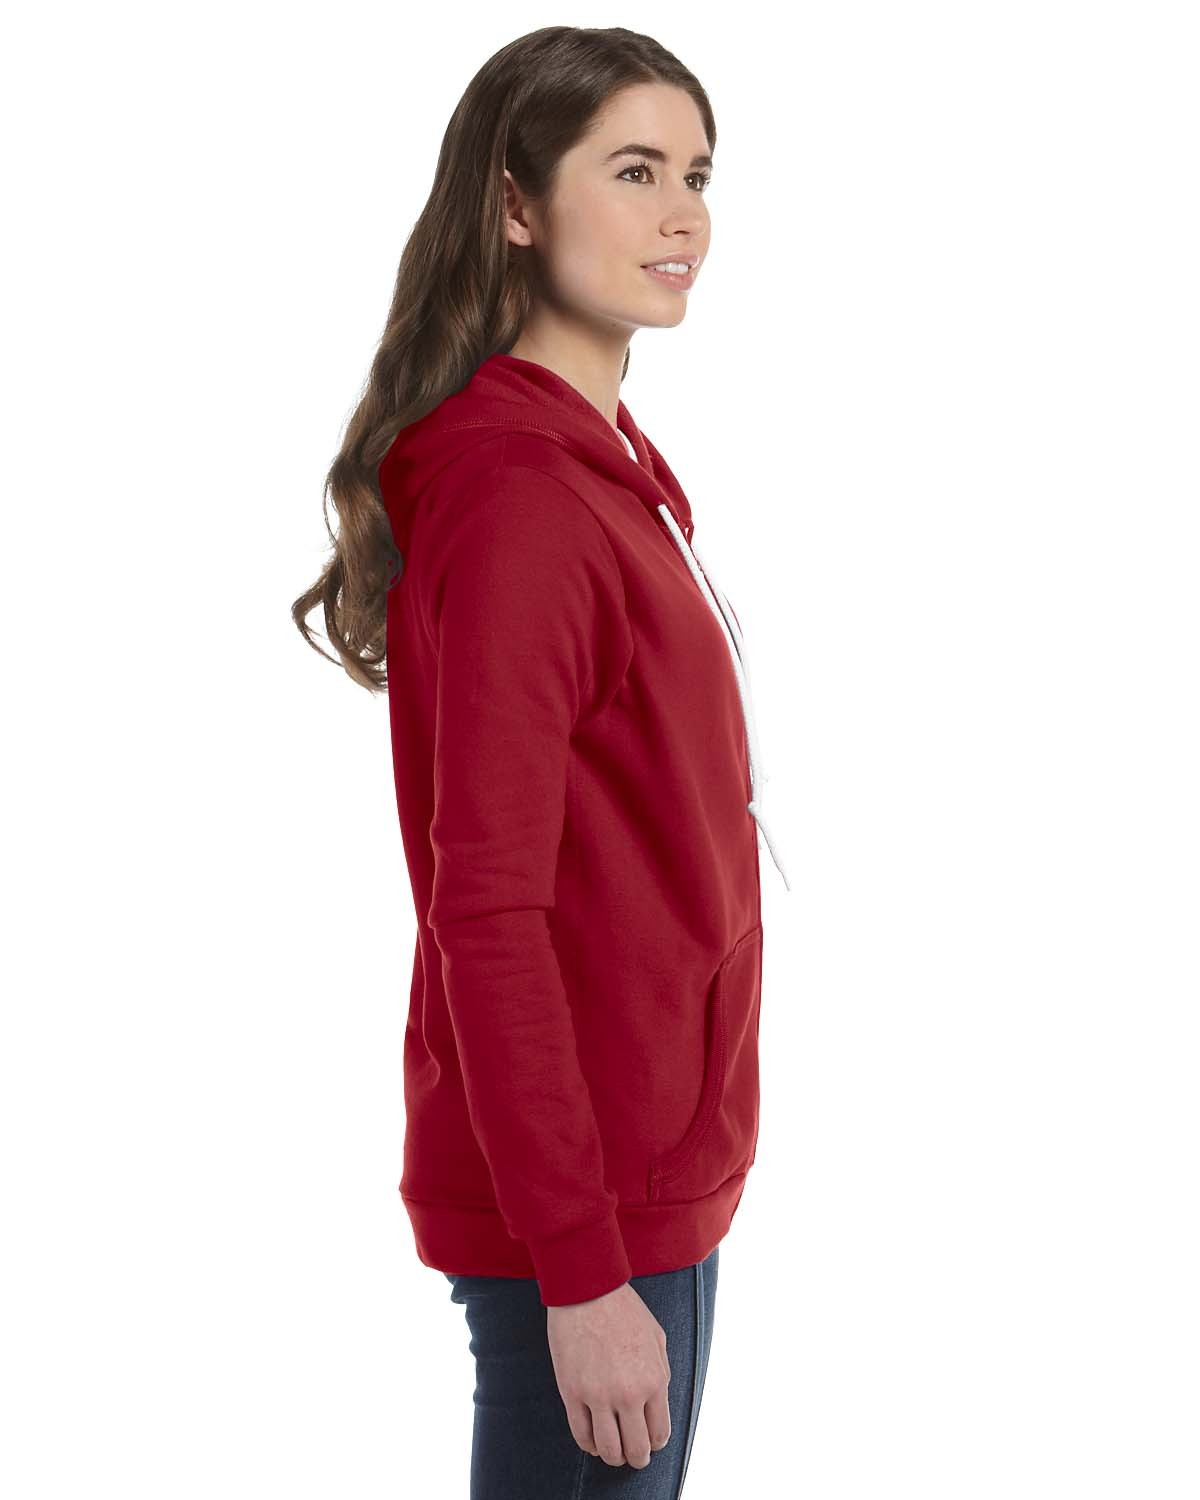 71600L Anvil INDEPENDENCE RED